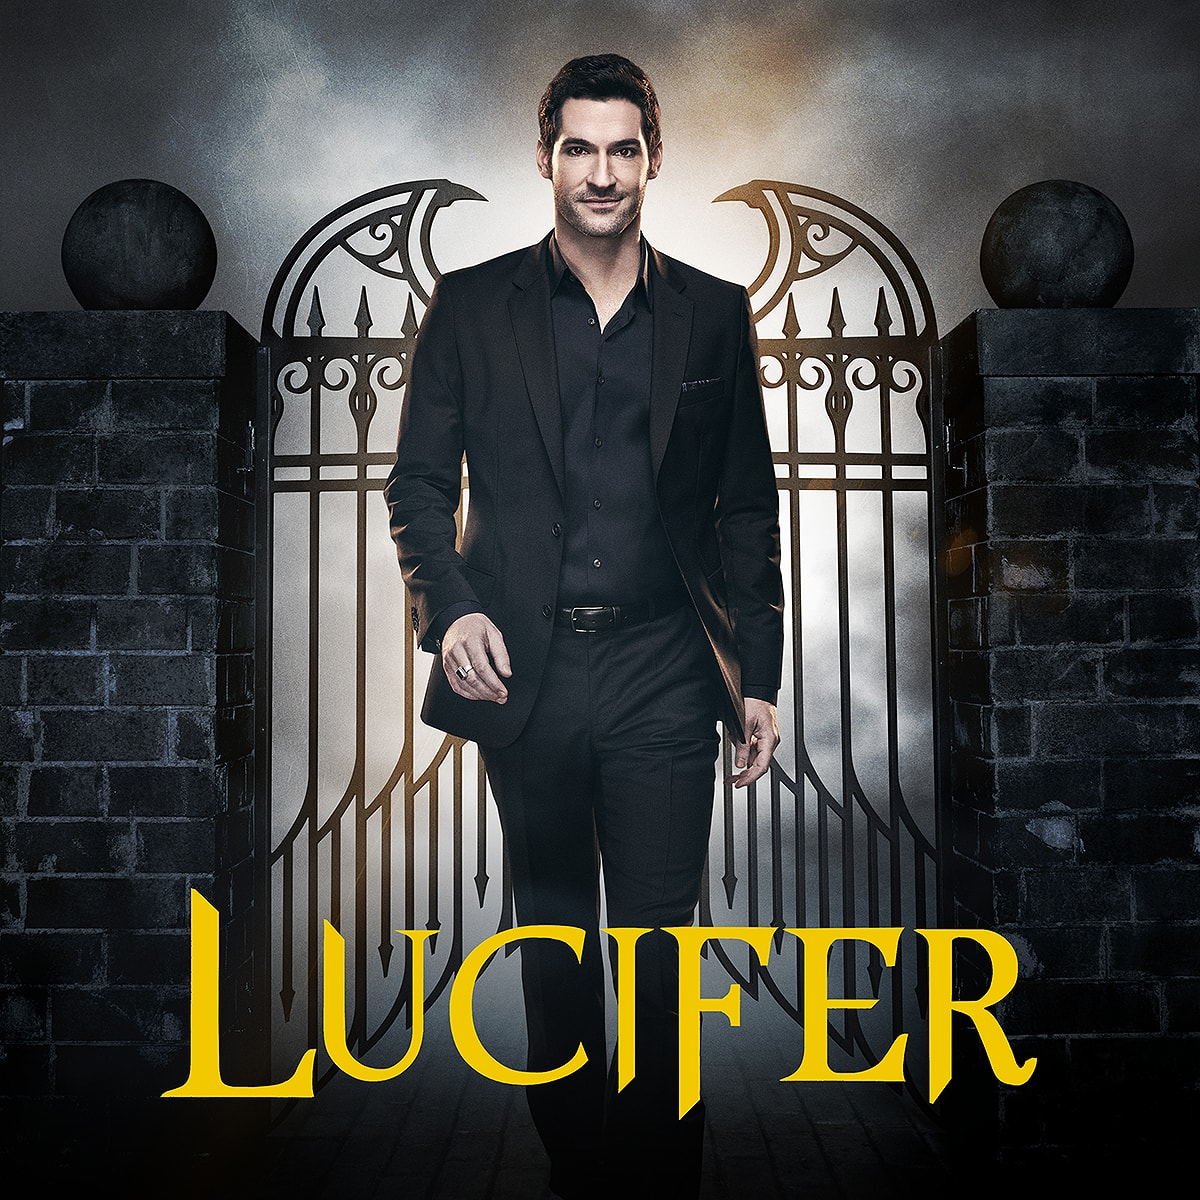 Lucifer Season 4 Promo S: Lucifer FOX Promos